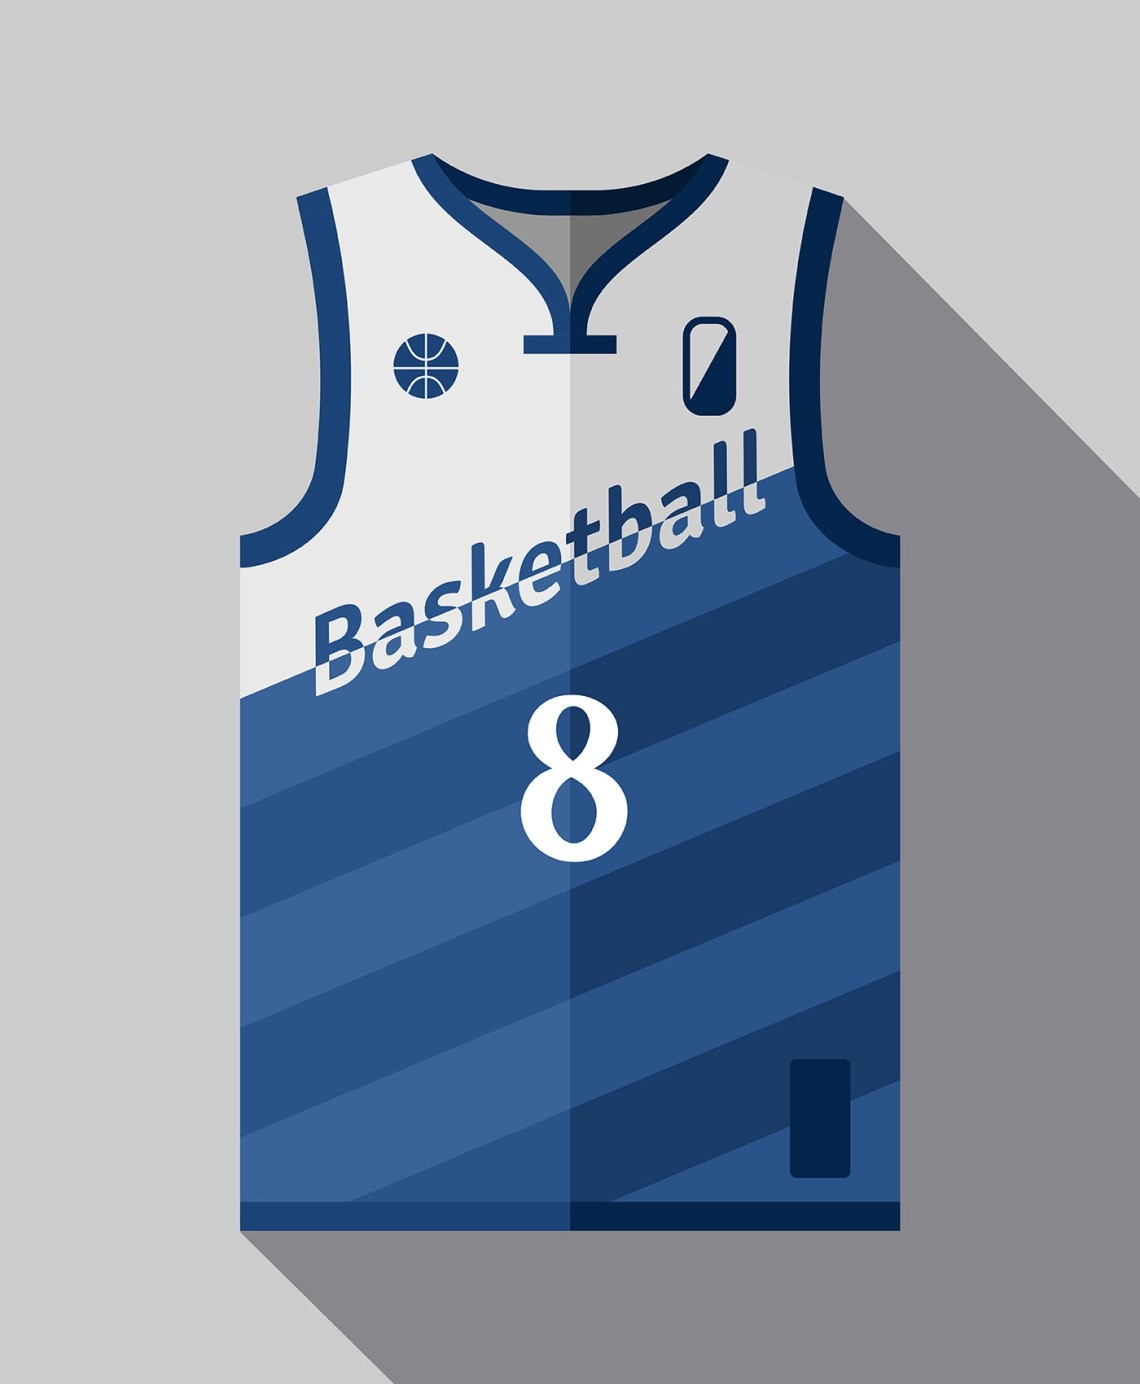 Download Basketball Jersey Mockup - Download Free Vectors, Clipart ...